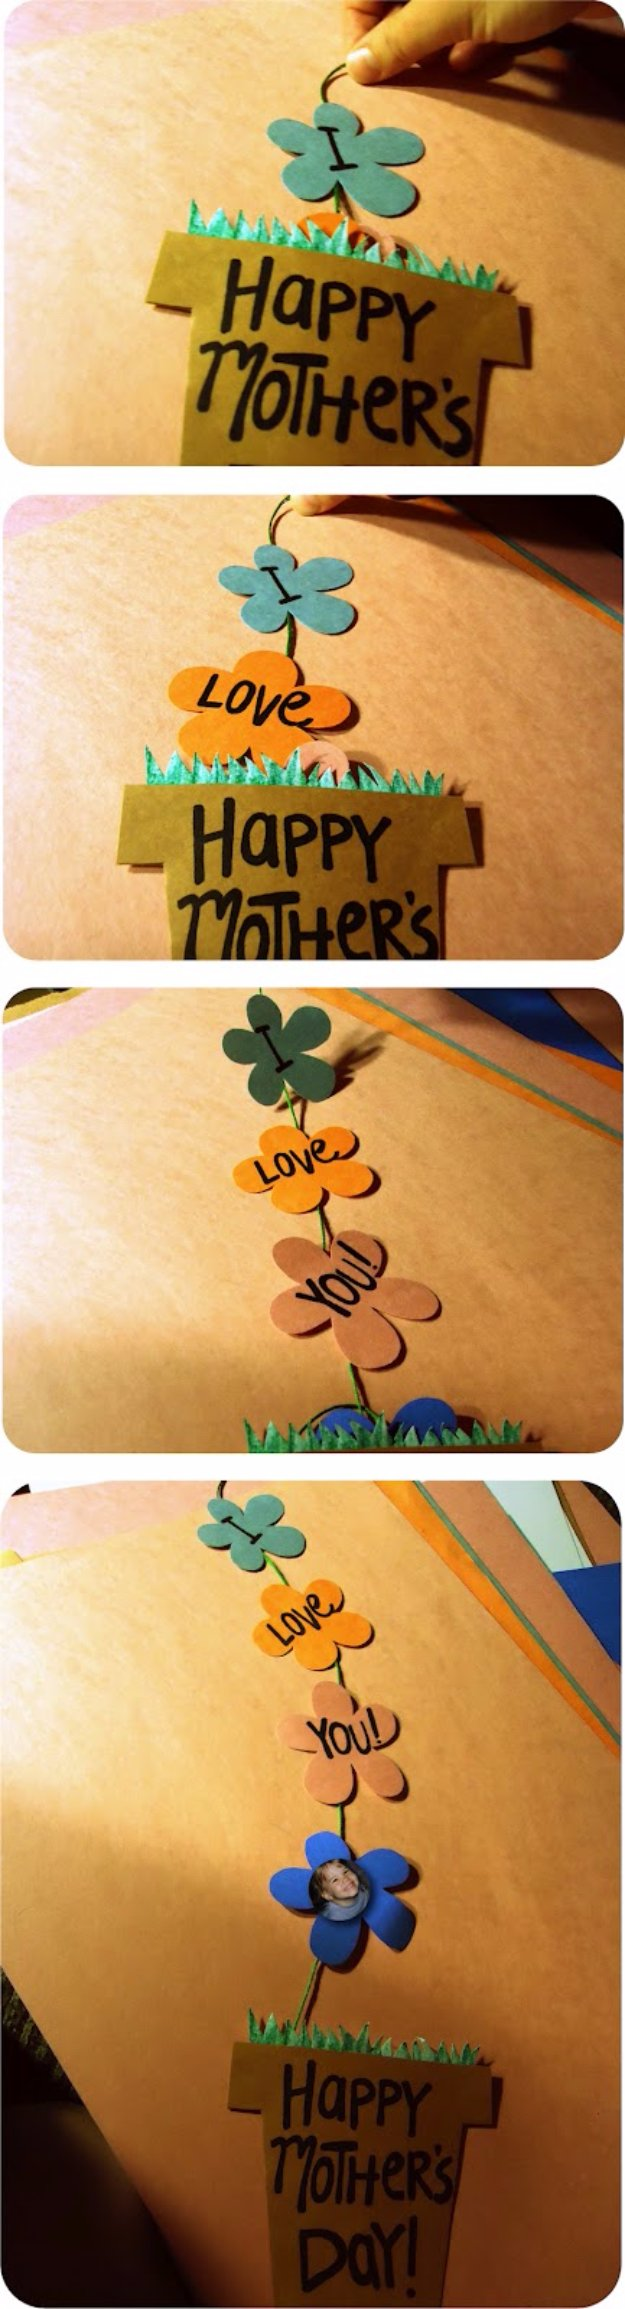 DIY Mothers Day Cards - DIY Mother's Day flower Pot Card - Creative and Thoughtful Homemade Card Ideas for Mom - Step by Step Tutorials, Best Quotes, Handmade Projects http://diyjoy.com/diy-mothers-day-cards